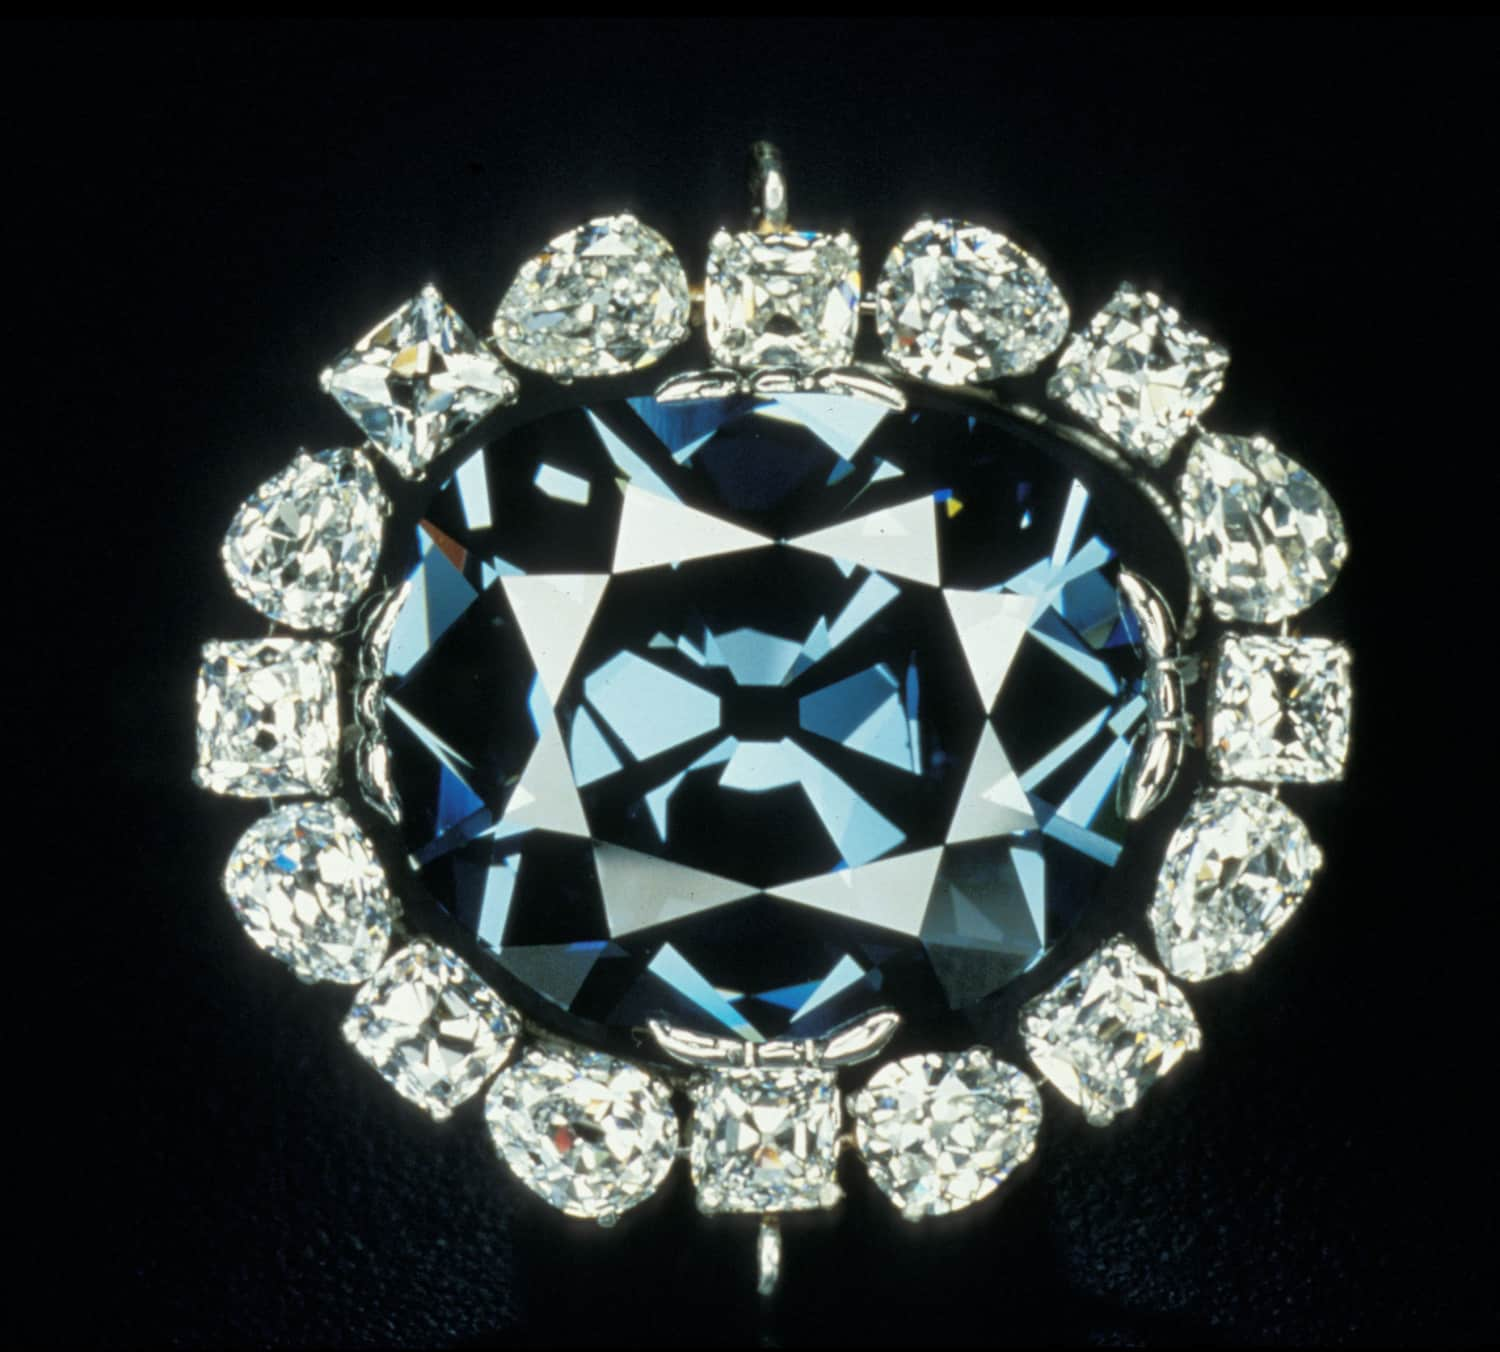 The Hope diamond. Image Courtesy of The Smithsonian Institute.